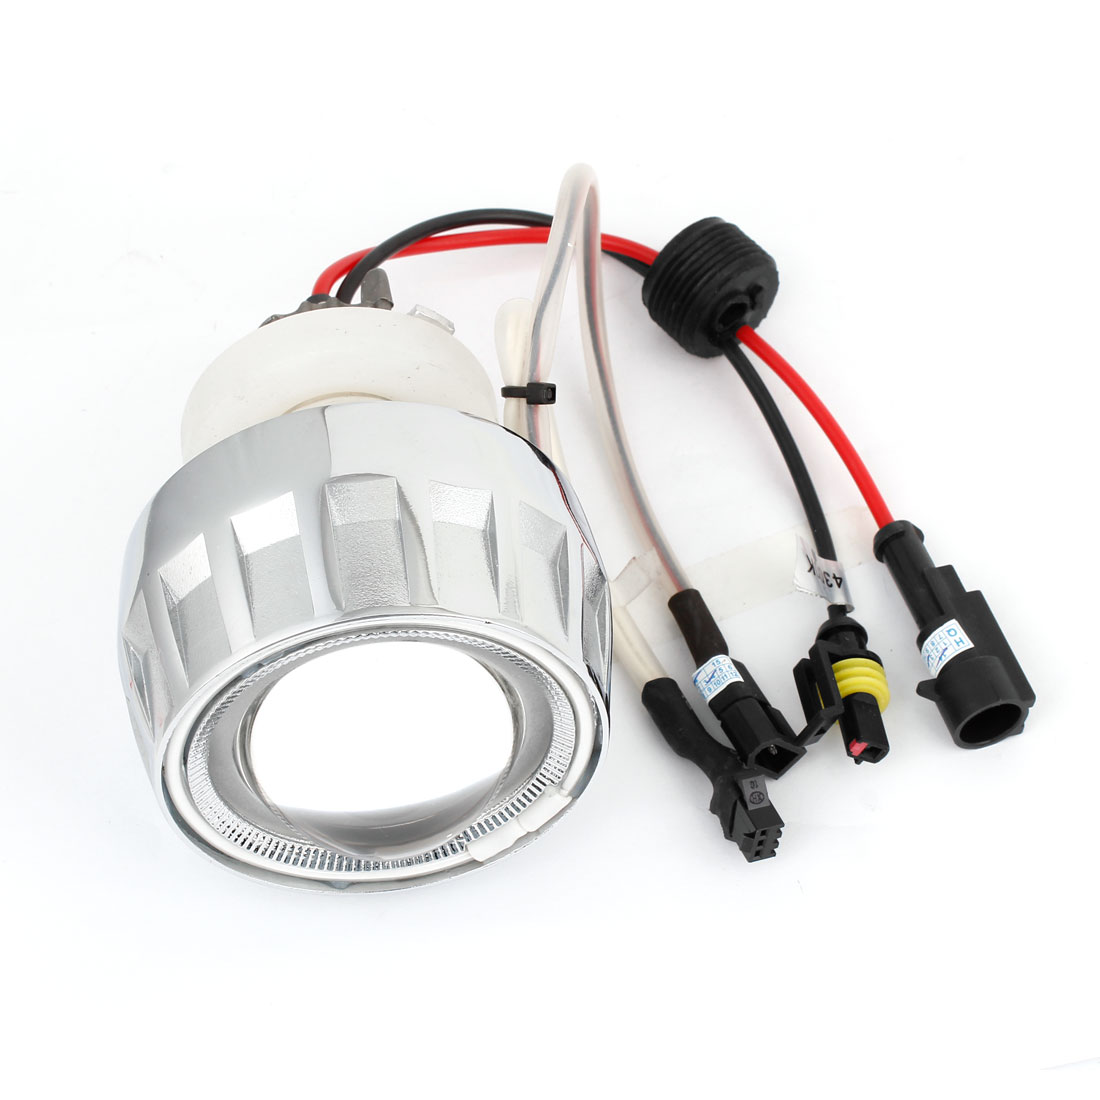 DC 12V Motorcycle 4300K White HID Xenon Projector Lens Light Kit w Angle Eye